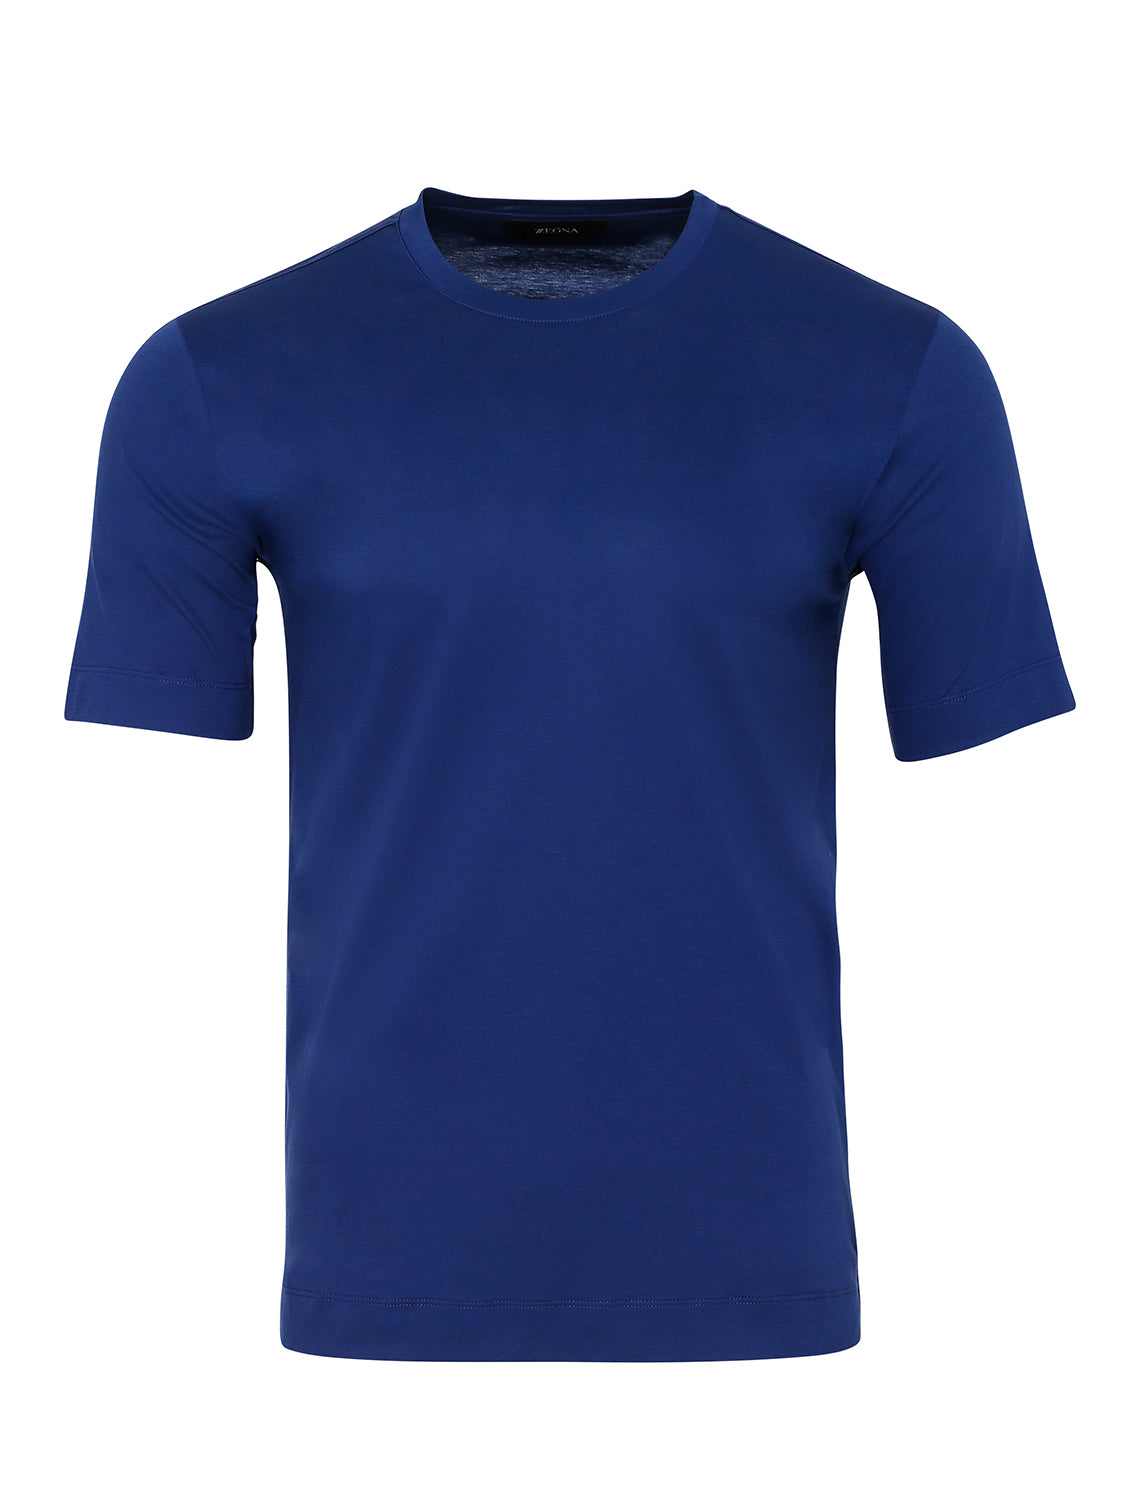 Z Zegna Mercerised T-Shirt (Blue) - Union 22